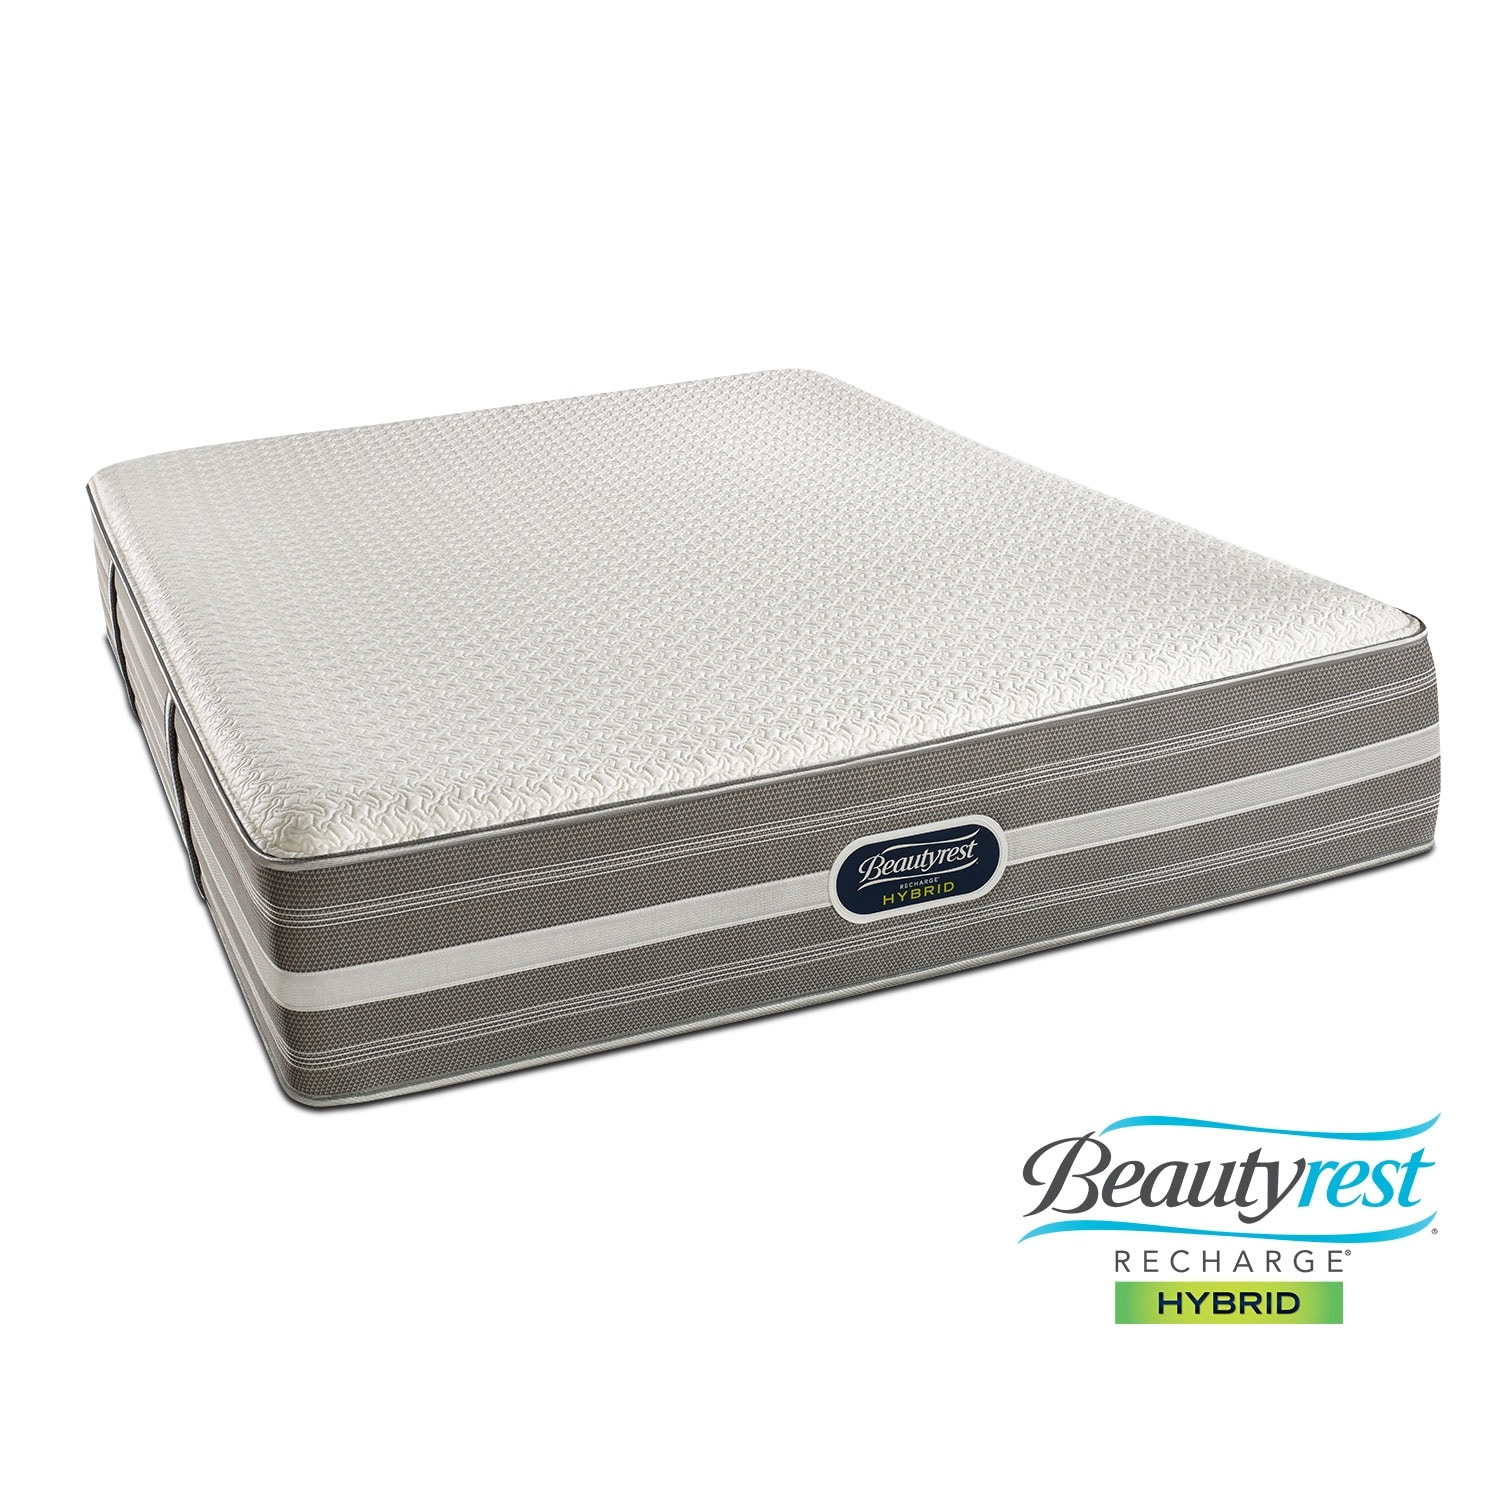 Mattresses and Bedding - Hopewell Luxury Firm Queen Mattress